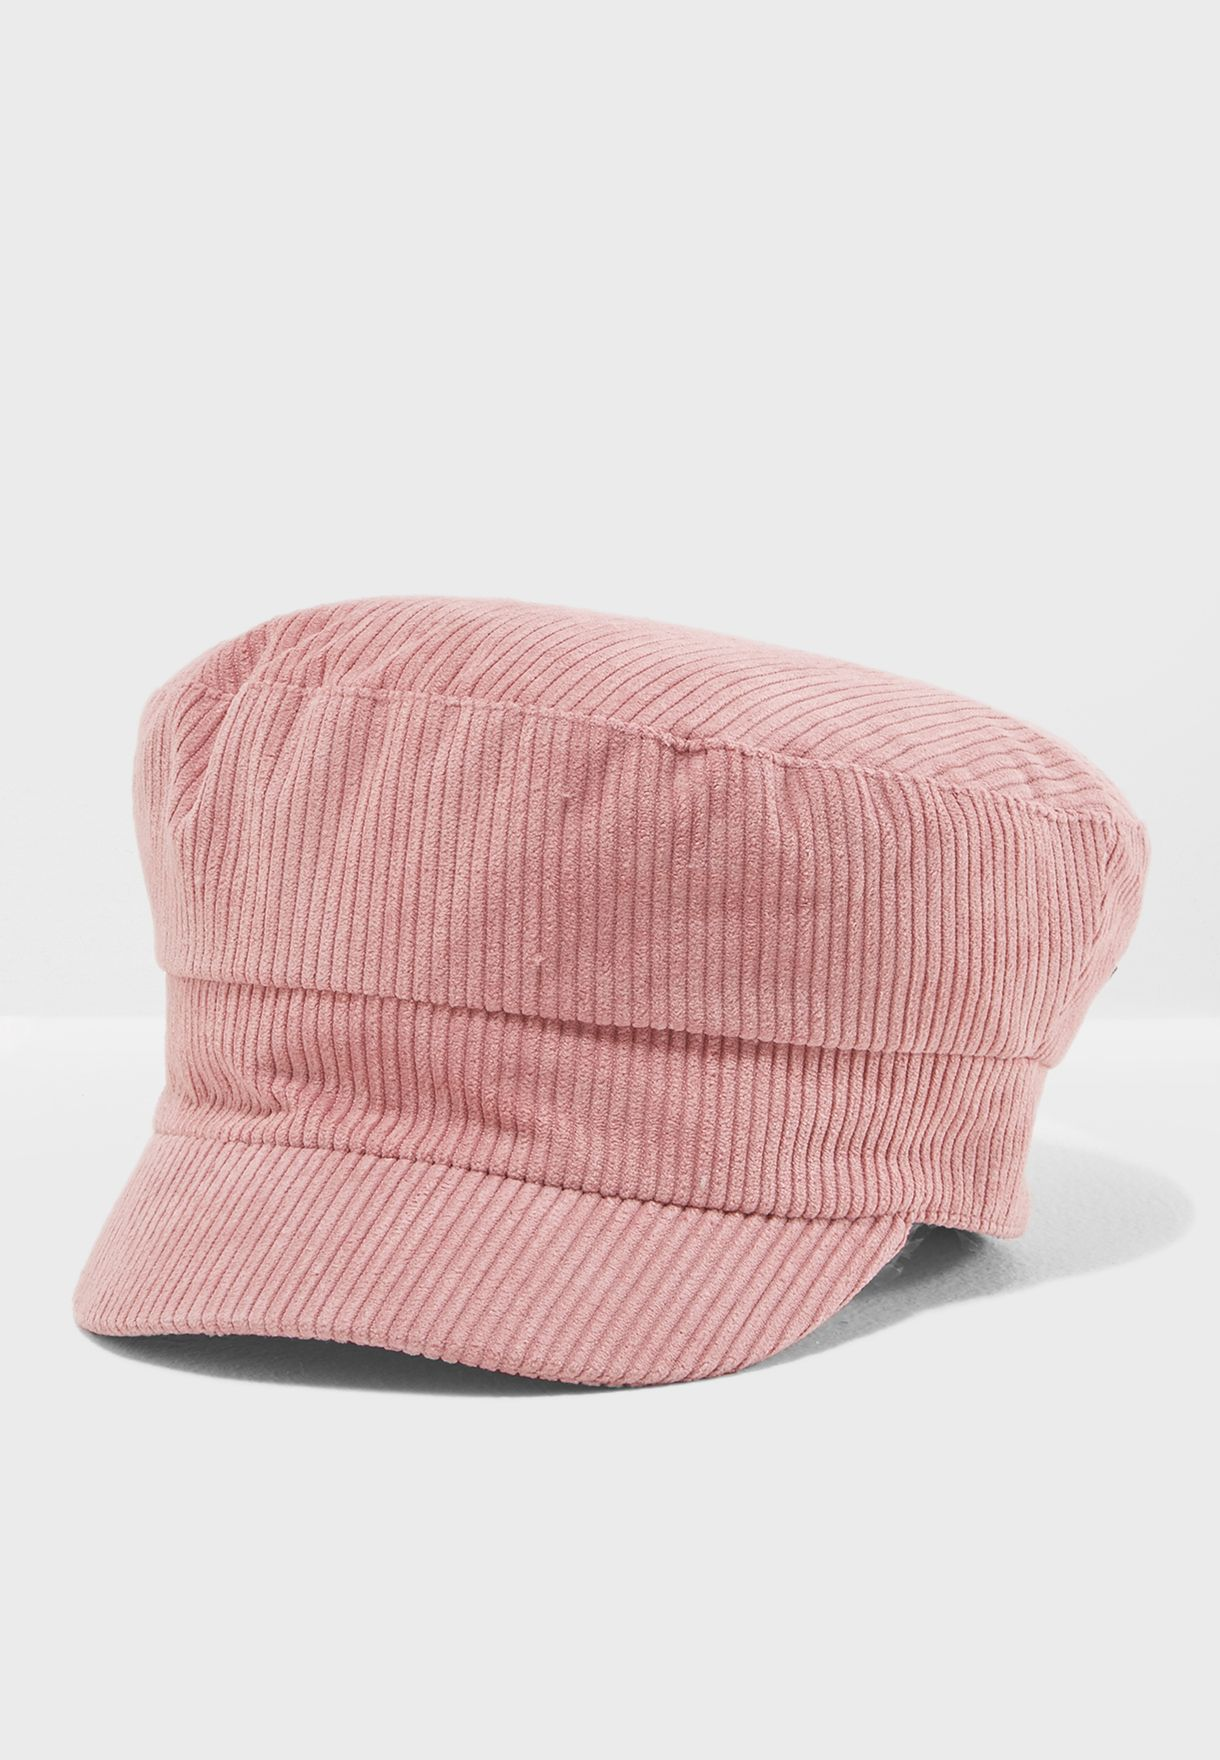 7e67a175cbb Shop Topshop pink Cord Baker Boy Hat 19K53MBLS for Women in Saudi -  TO856AC60AAT